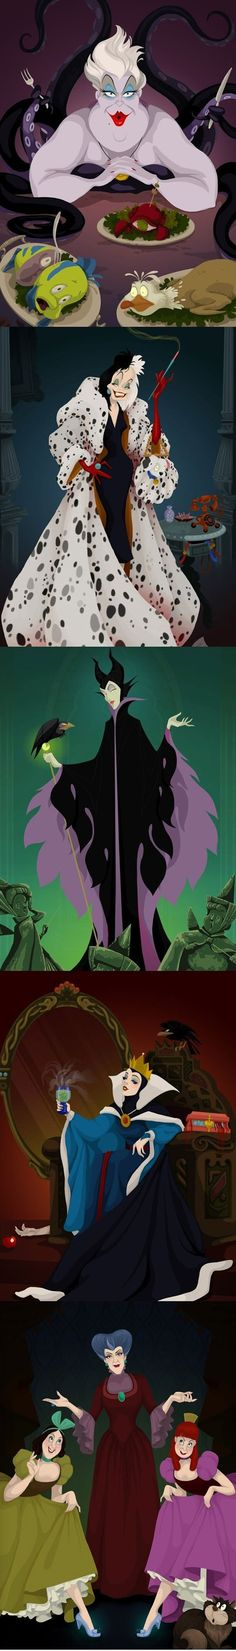 Disney Villain happy endings